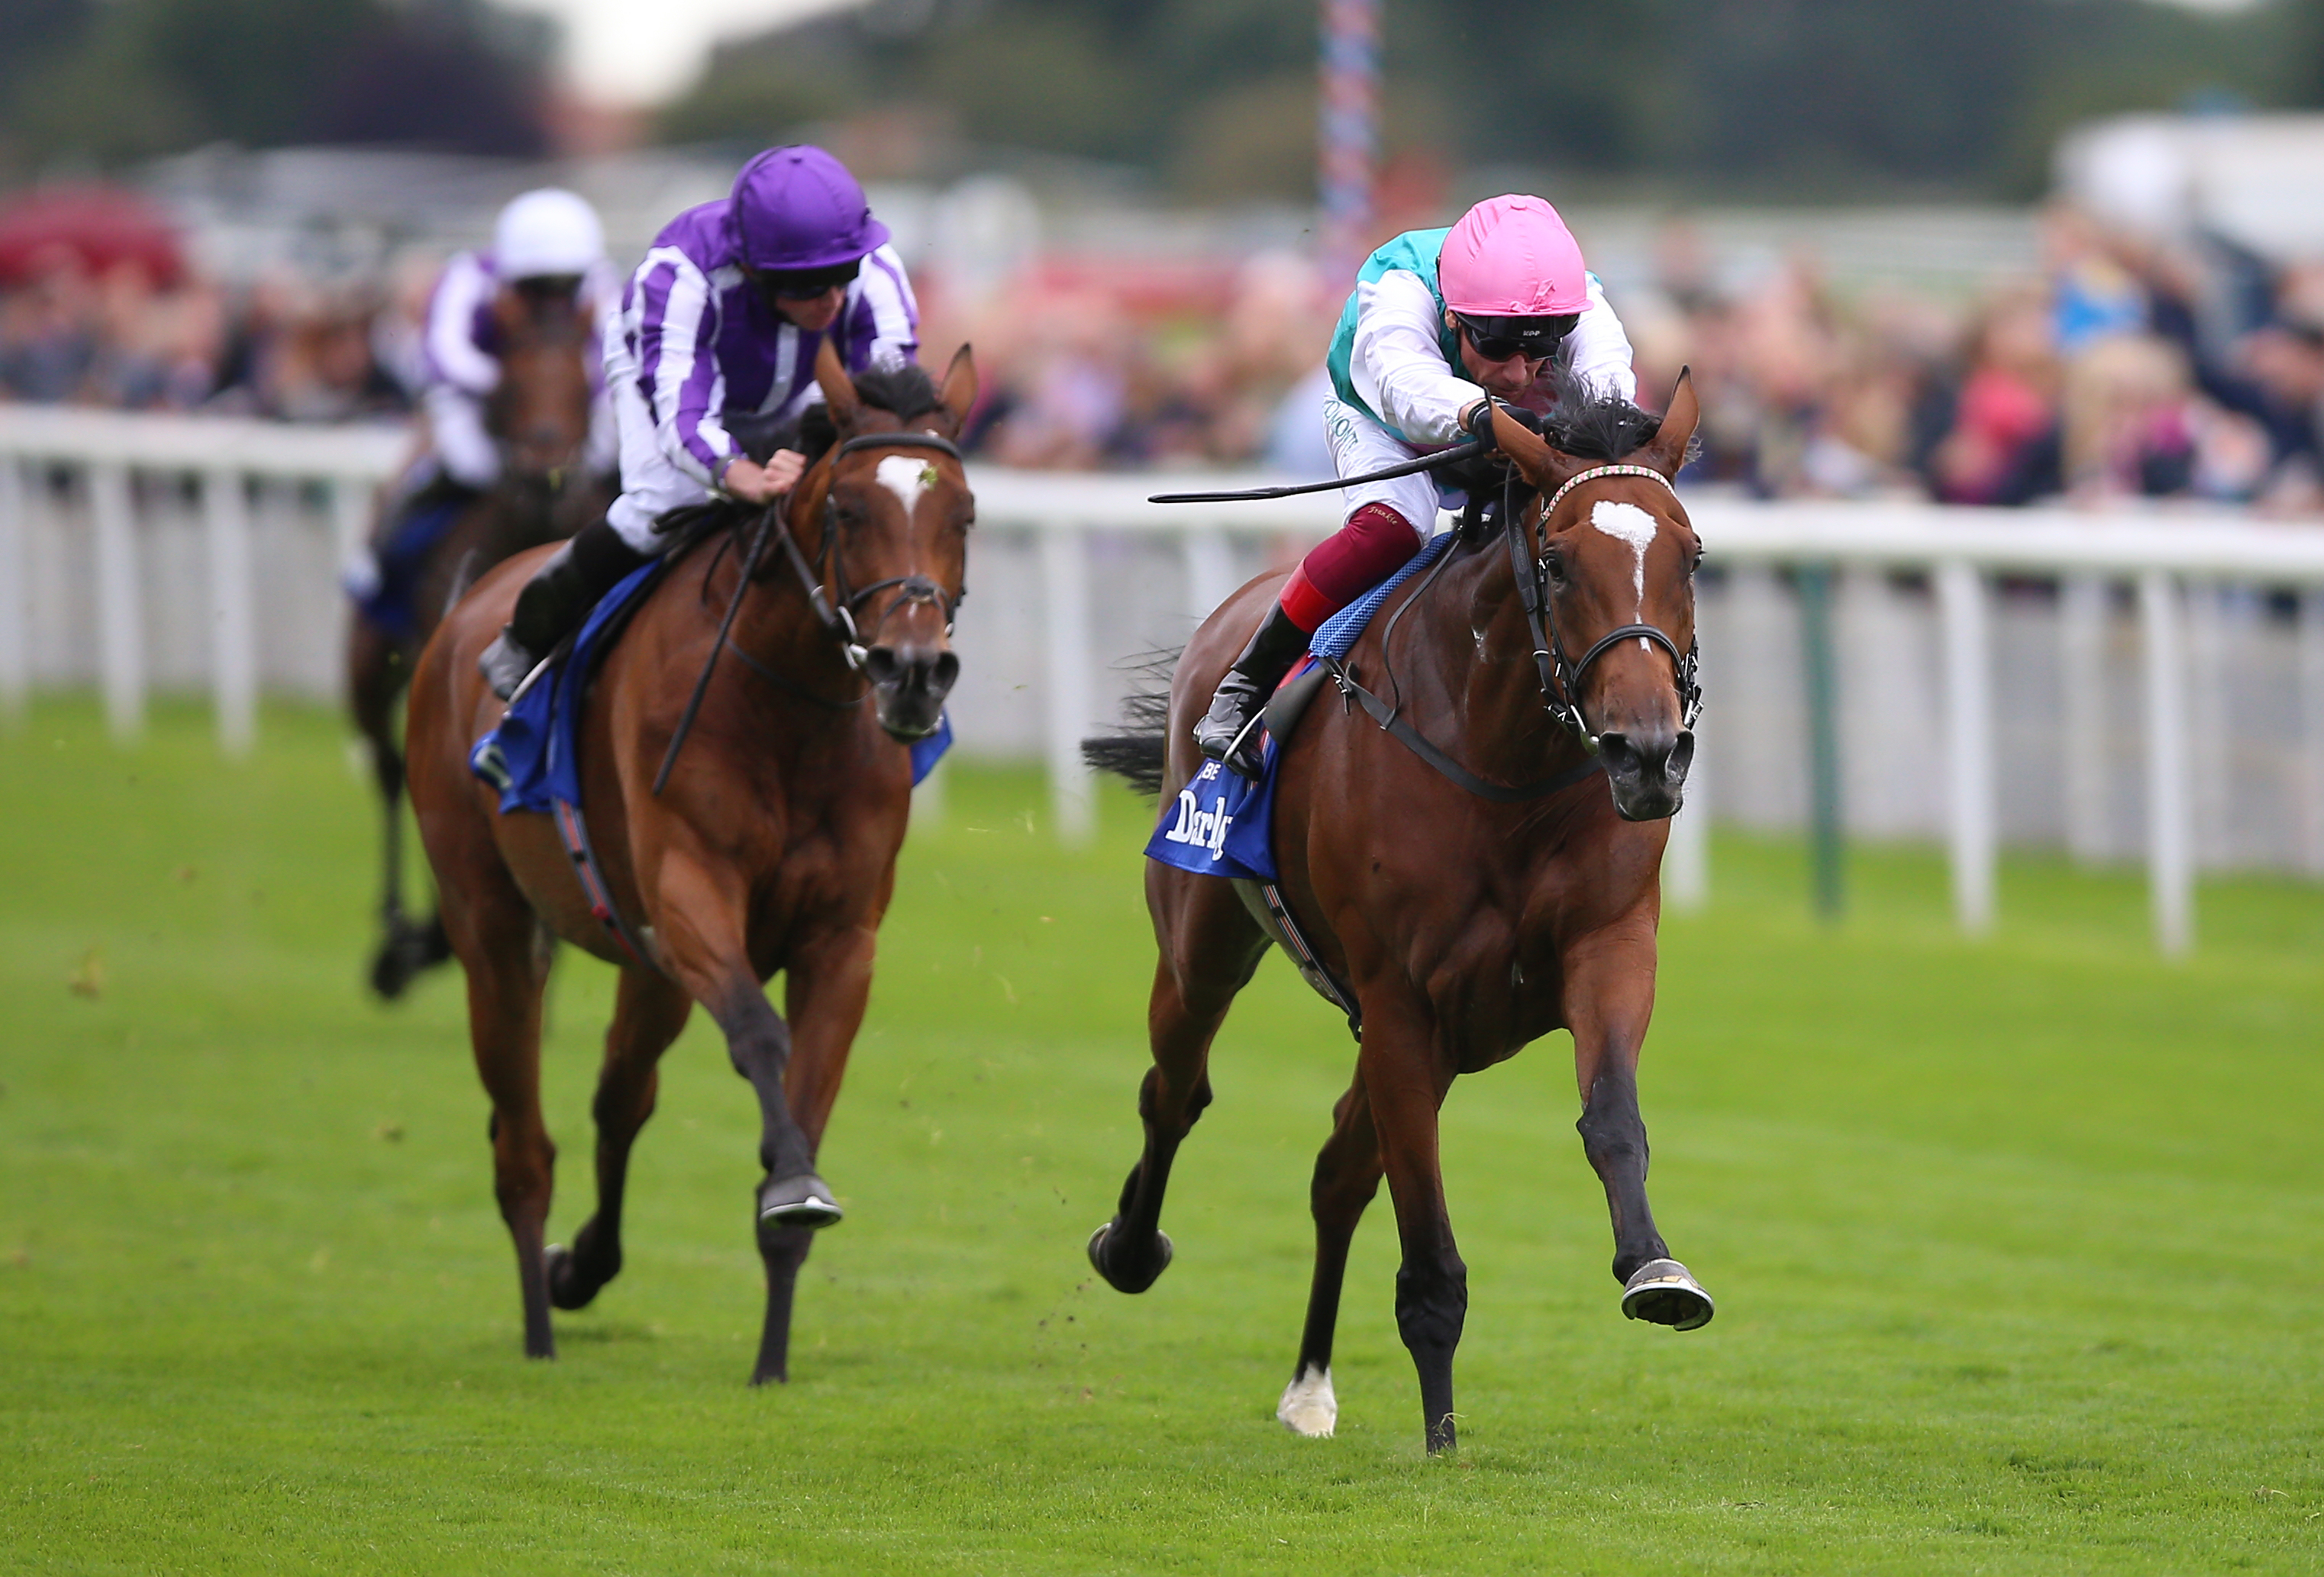 Magical (left) again had to settle for second to Enable, this time in the Yorkshire Oaks